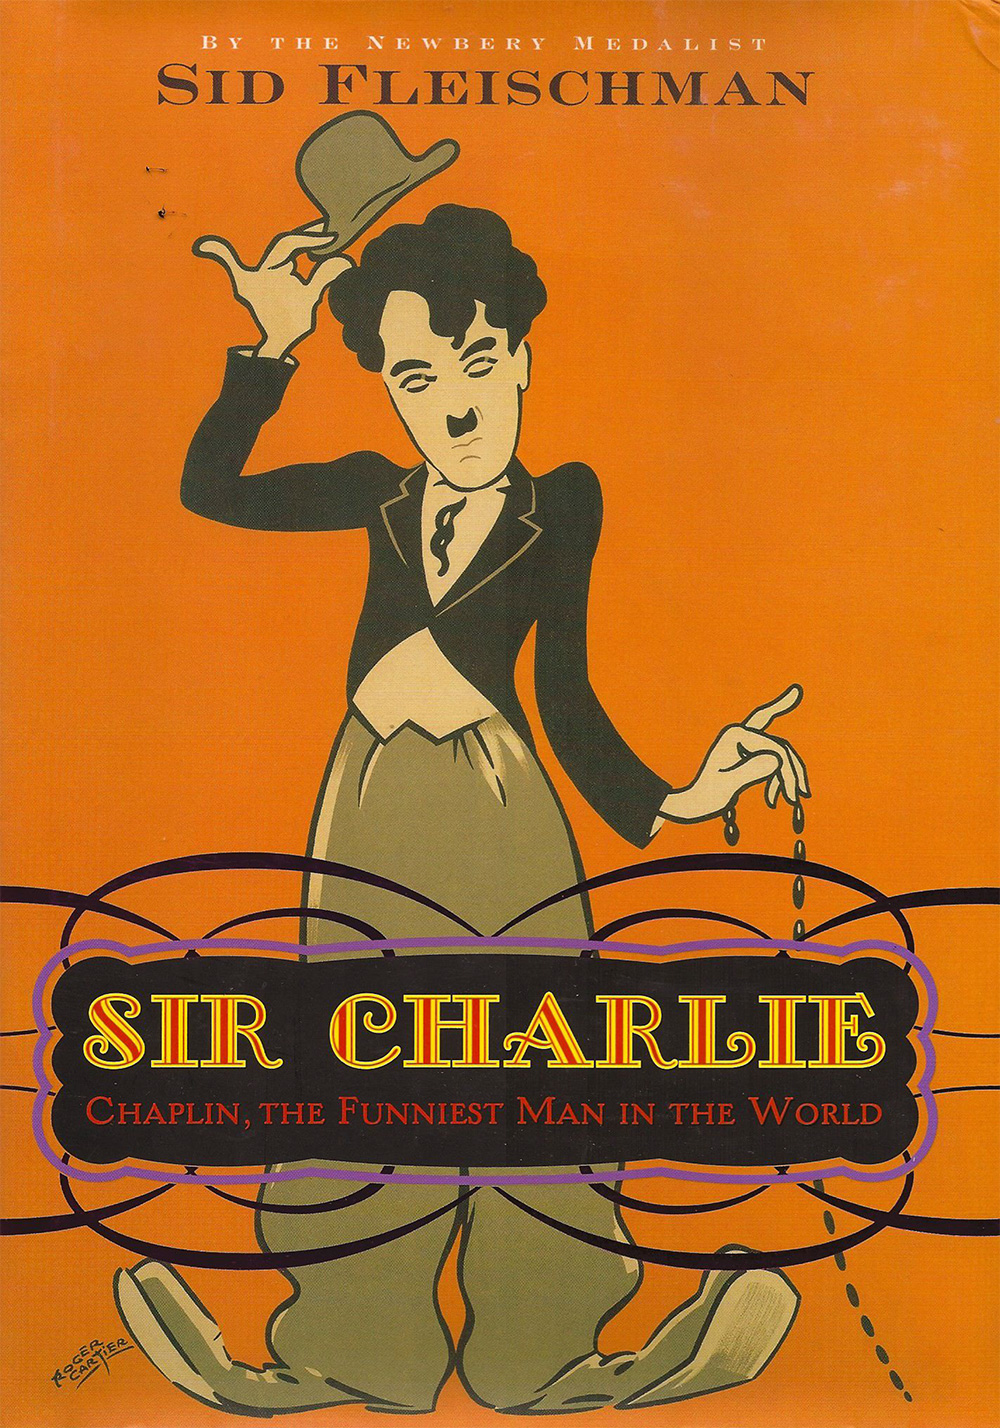 Sir Charlie: Chaplin, the Funniest Man in the World - Abandoned by his alcoholic father, neglected by a mother fighting insanity, Charlie Chaplin rose from the London slums to dine on gold plates in his Beverly Hills mansion, only to be driven from the country that had brought him worldwide fame. Never were tragedy and comedy so inextricably mixed as in his too-outlandish-for-fiction life, told with Sid Fleischman's trademark wit and verve. Publishers Weekly Best Children's Books list Booklist's Editor's Choice list